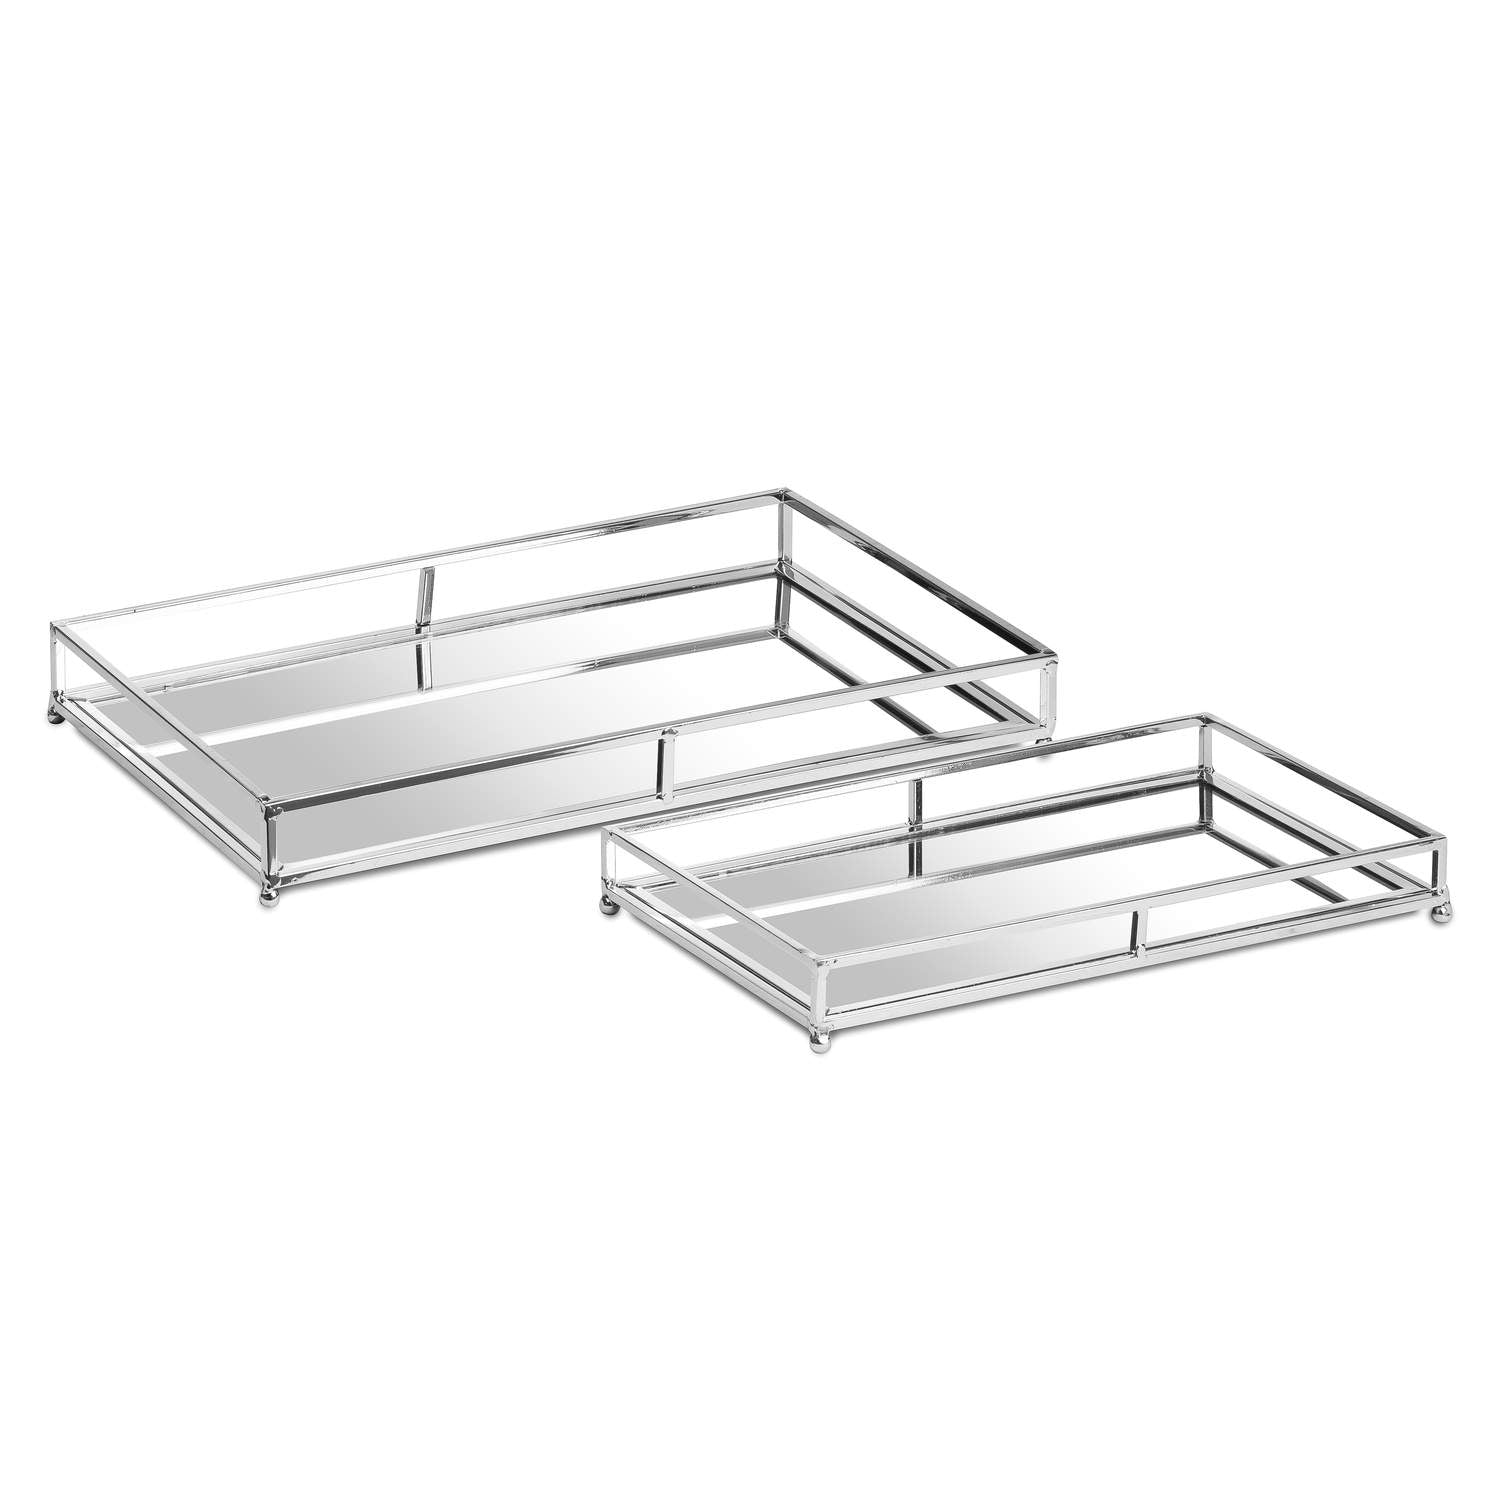 Set of 2 Mirrored Trays